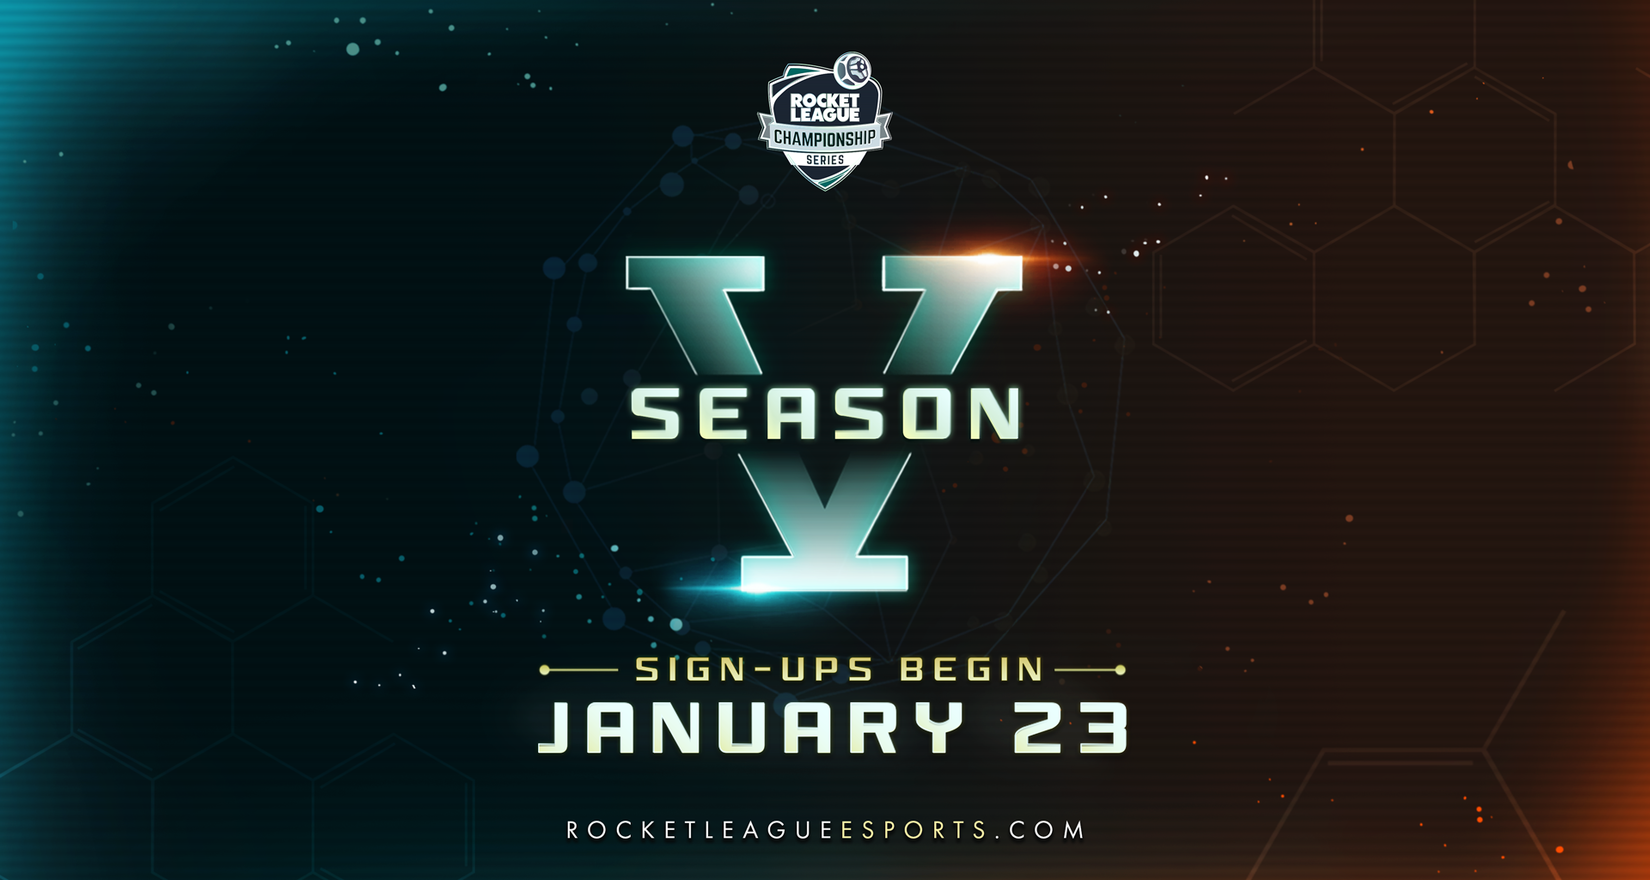 Introducing RLCS Season 5 Image